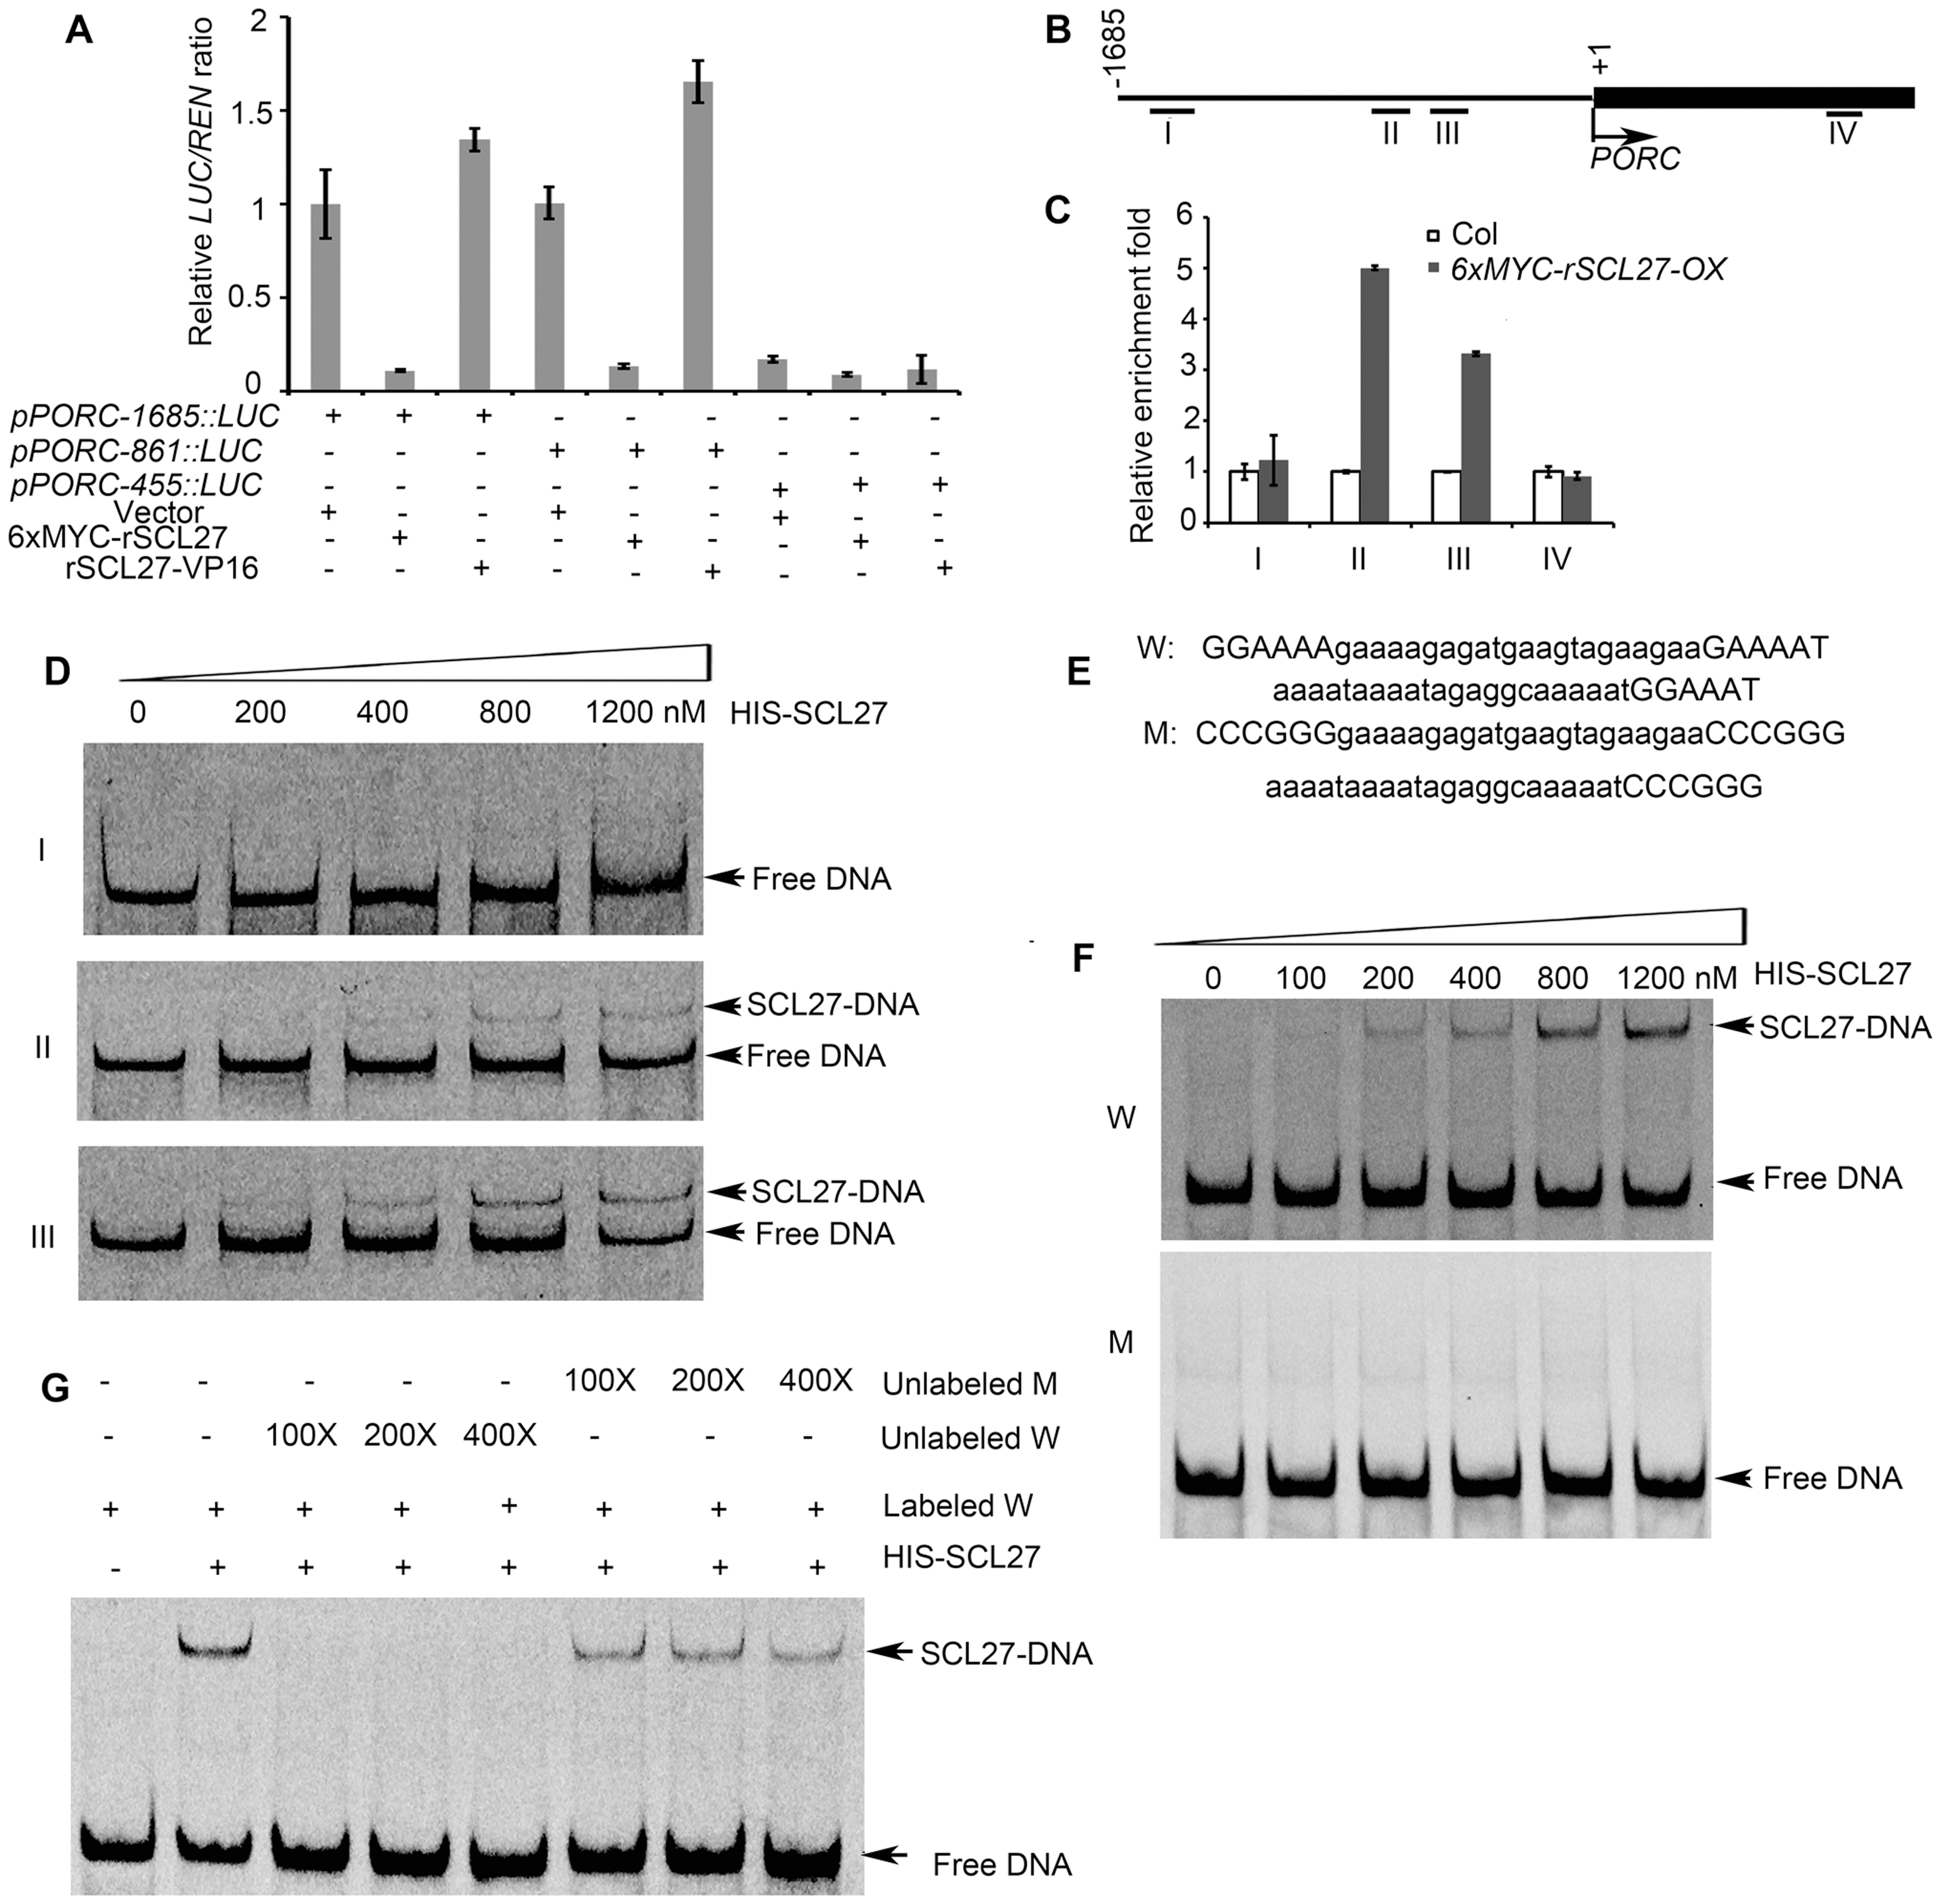 SCL27 binds to the <i>PORC</i> promoter.